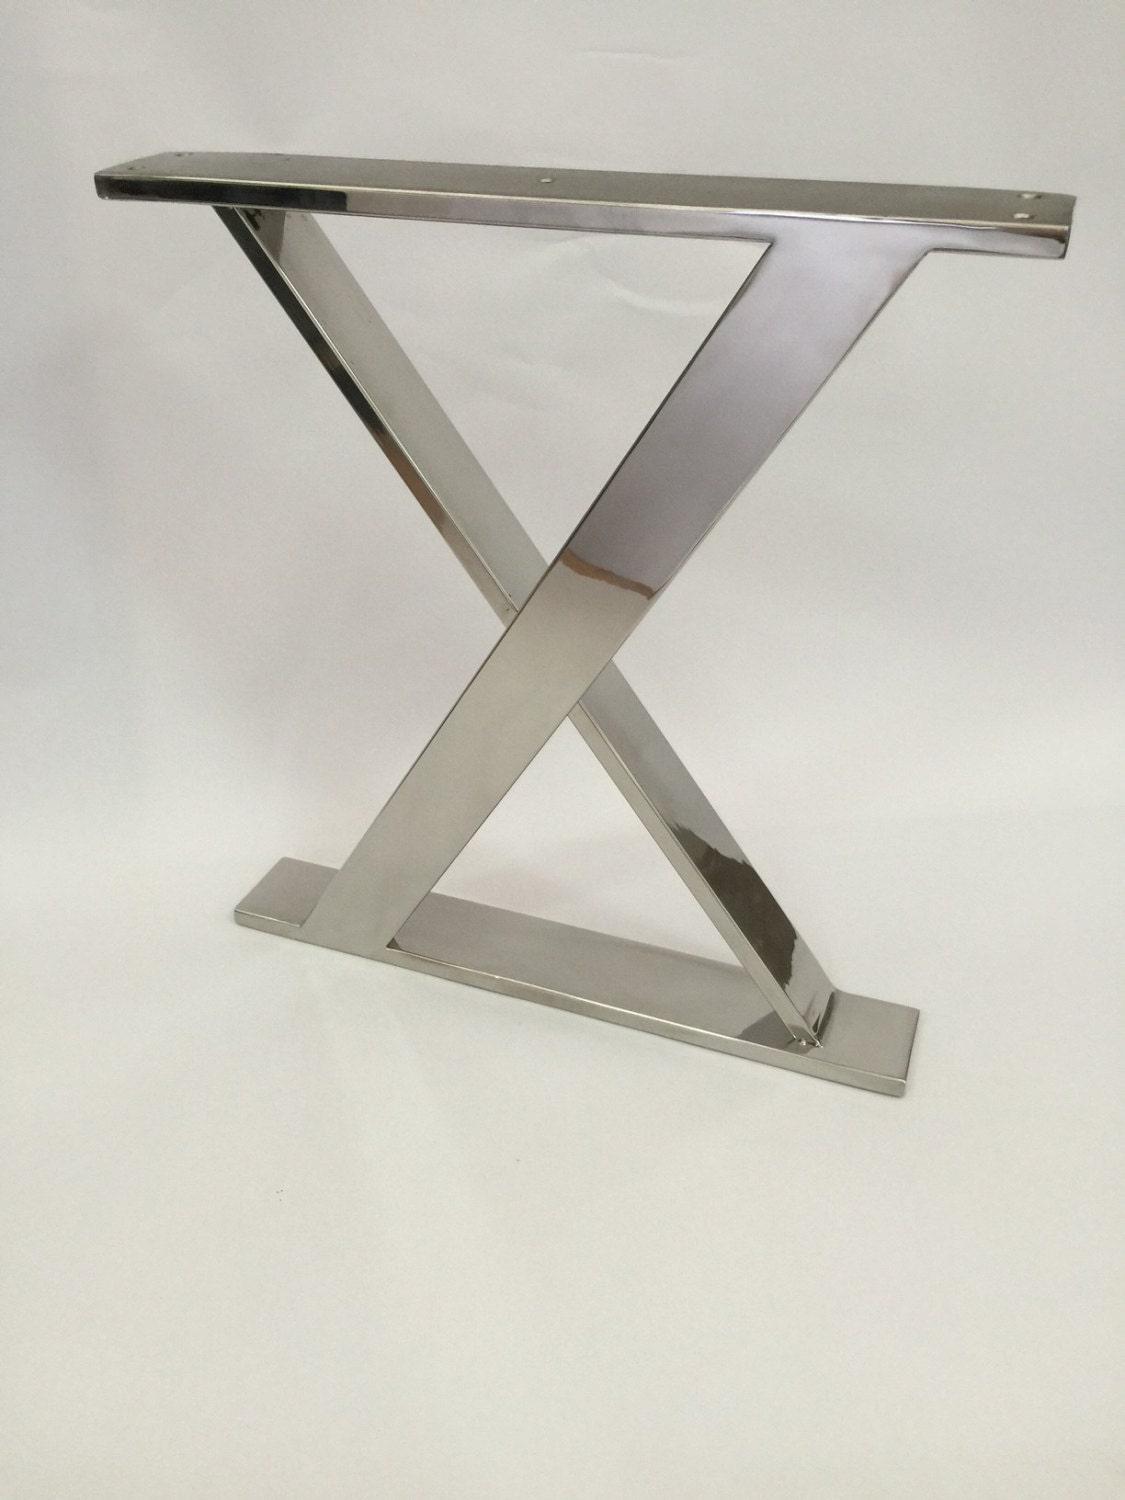 14inch X Frame stainless steel bench base, ottoman base, seat base, side  table - Stainless Table Base Etsy